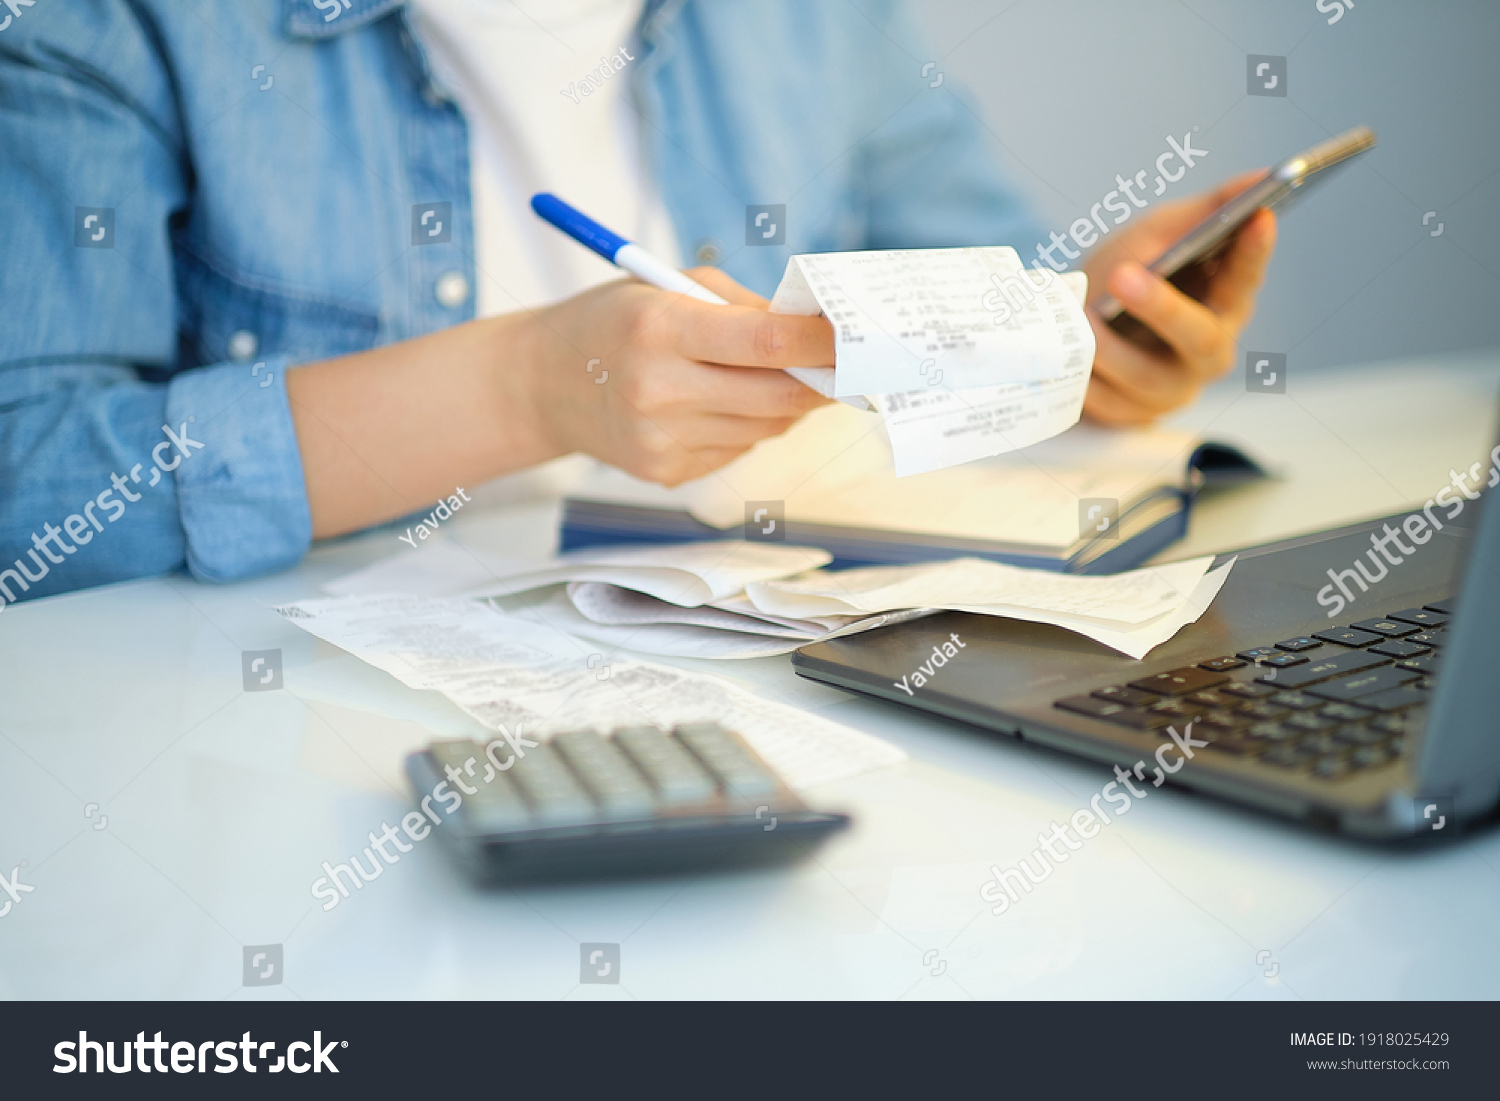 woman using a pen writing on bank account book while holding the bills to calculate in living room at home. Expenses, account, taxes, home budget concept #1918025429